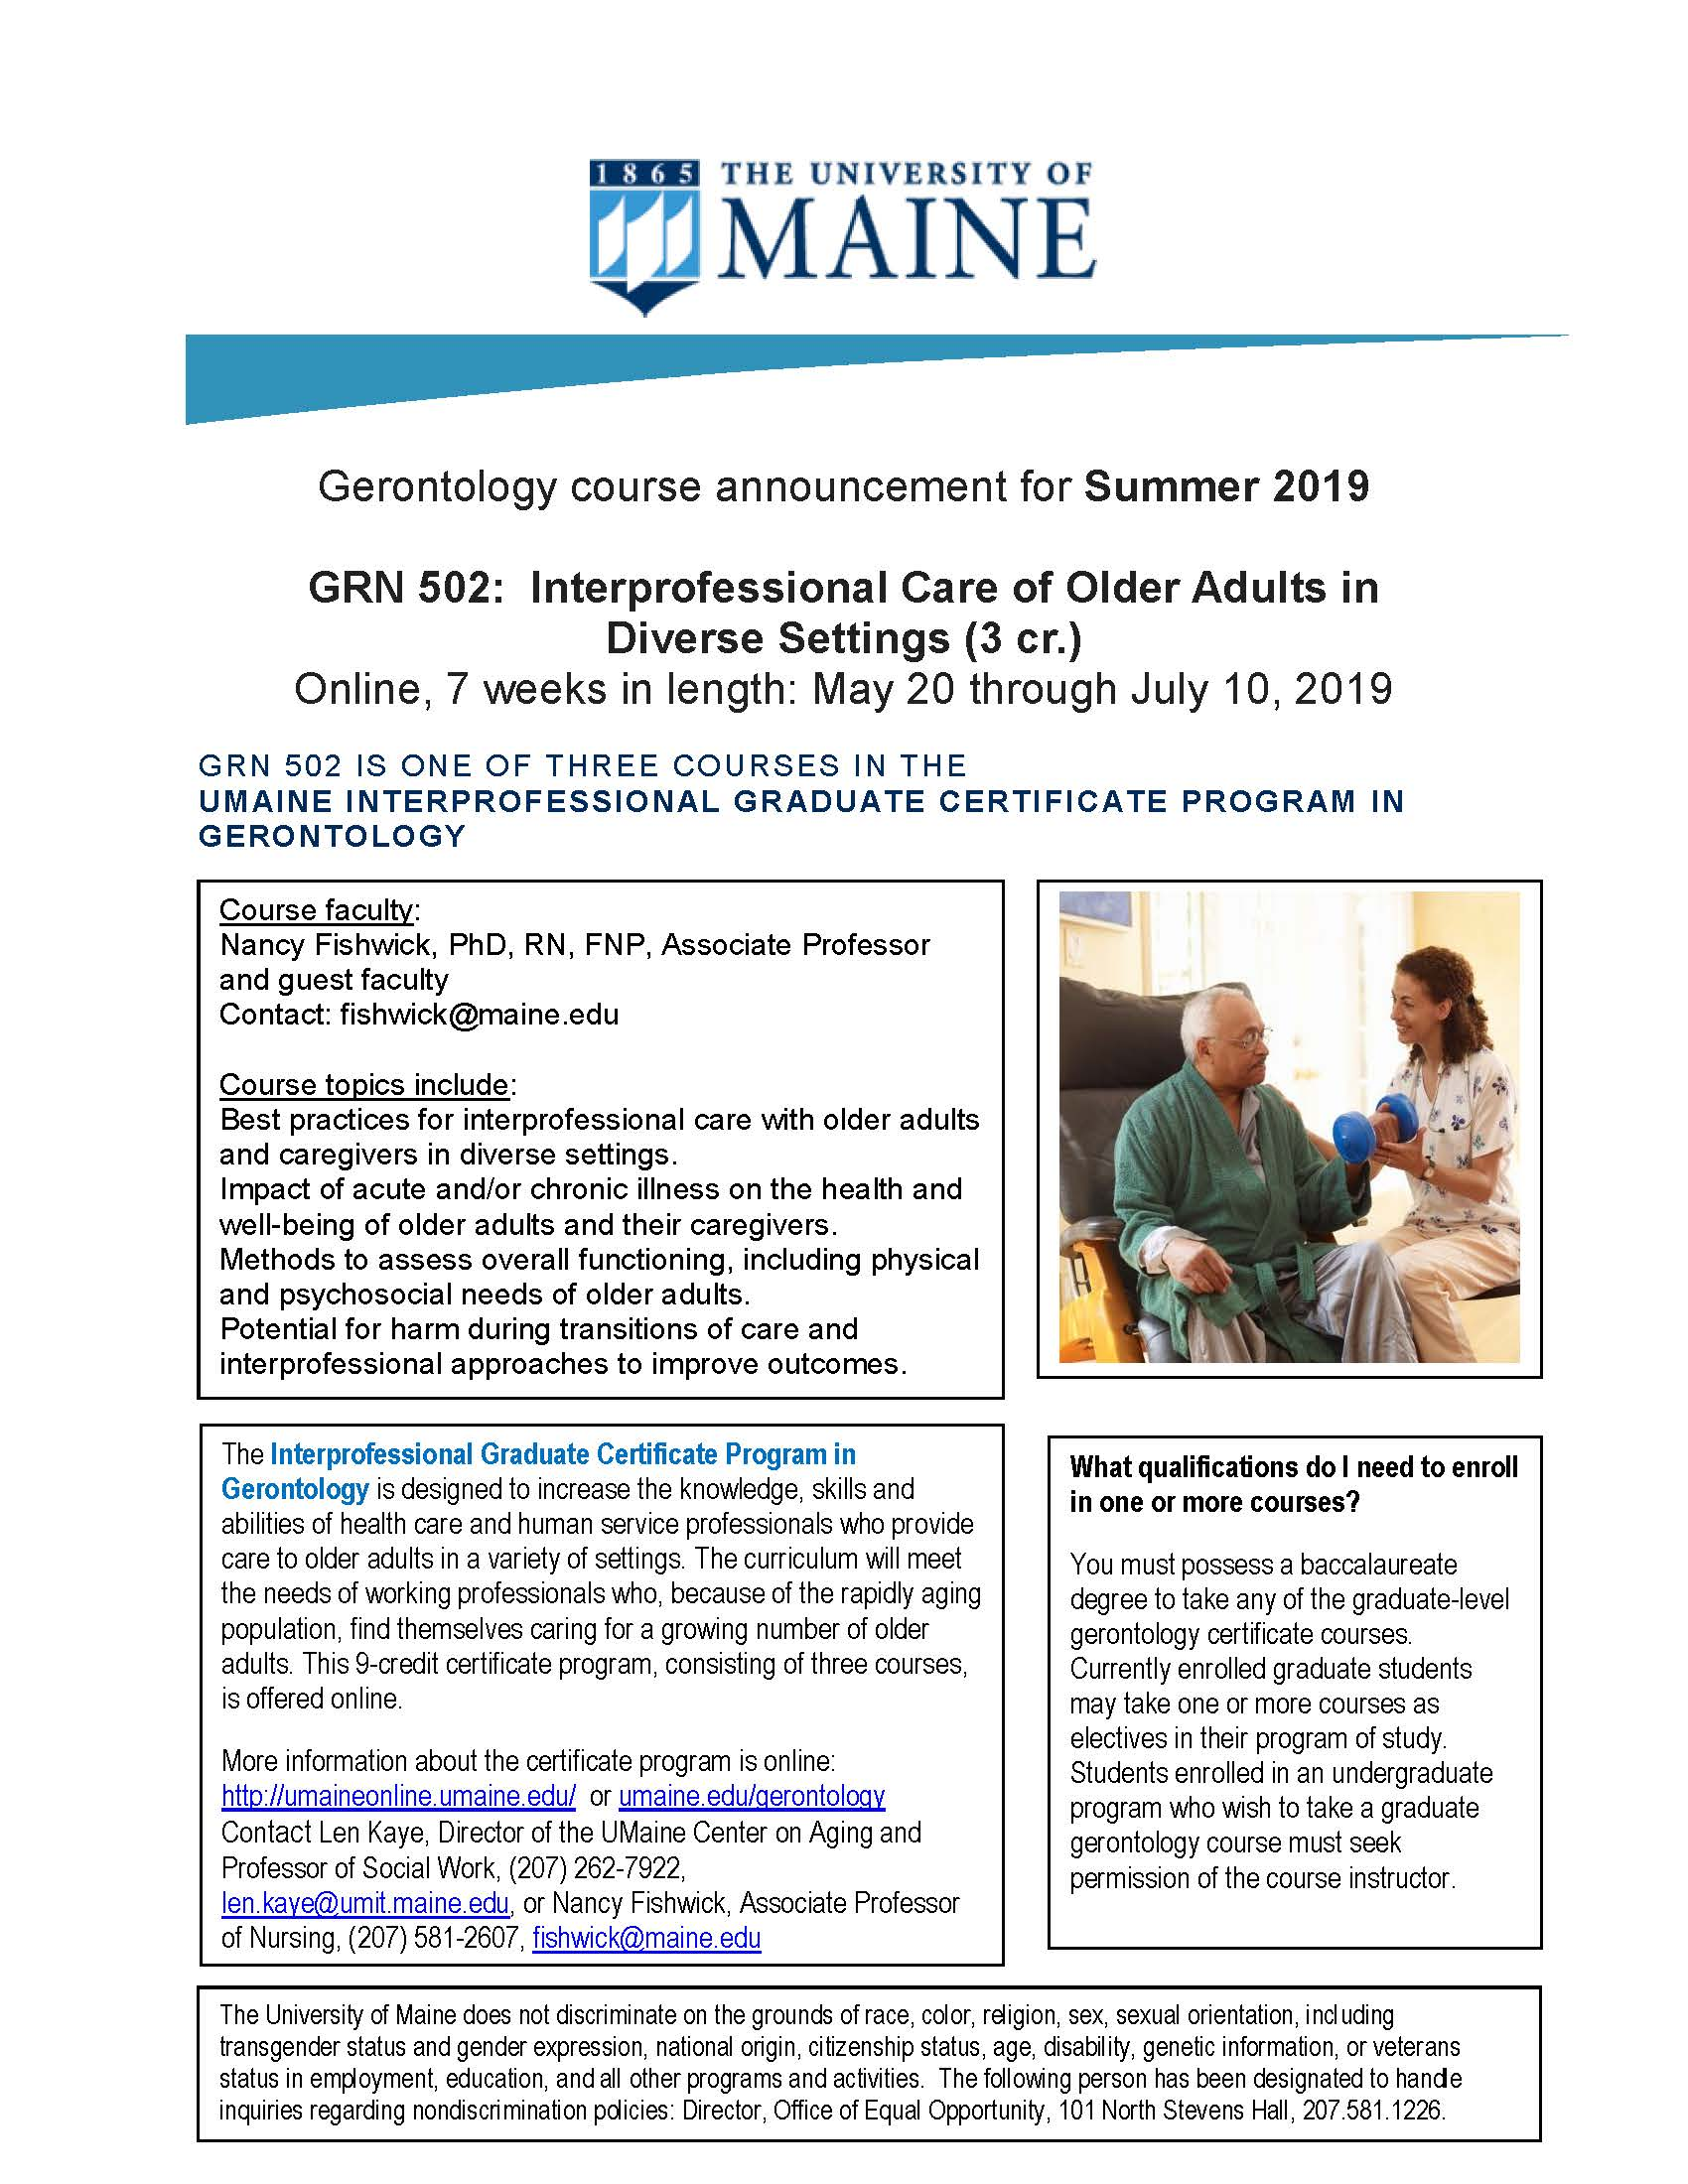 Gerontology course announcement for Summer 2019 - UMaine